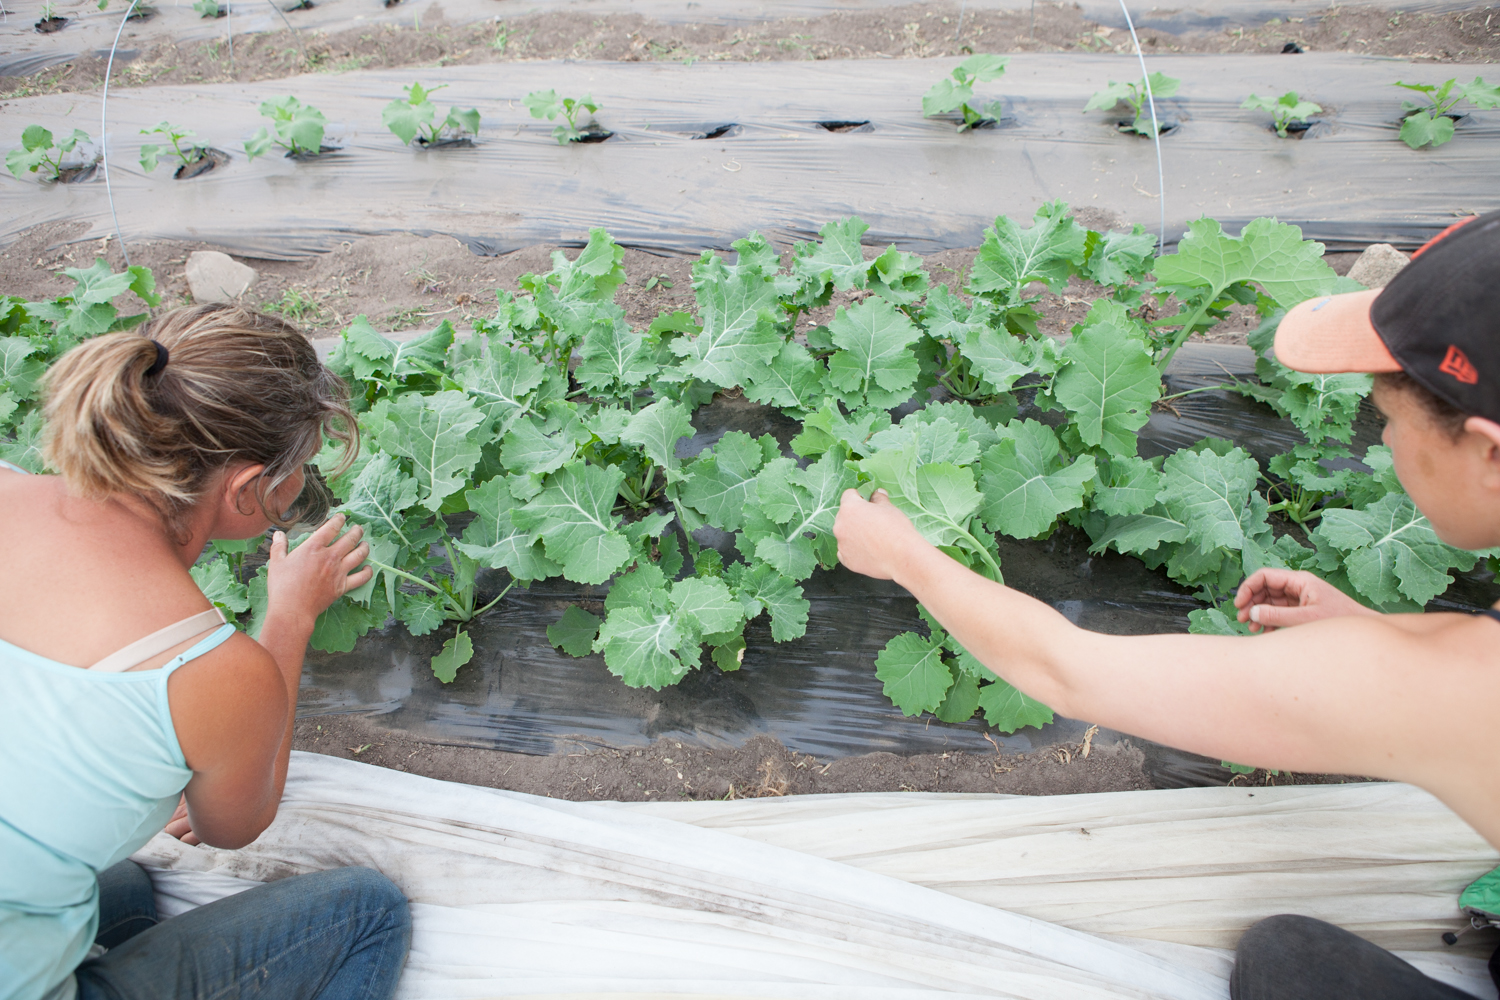 Looking for Aphids on the Kale